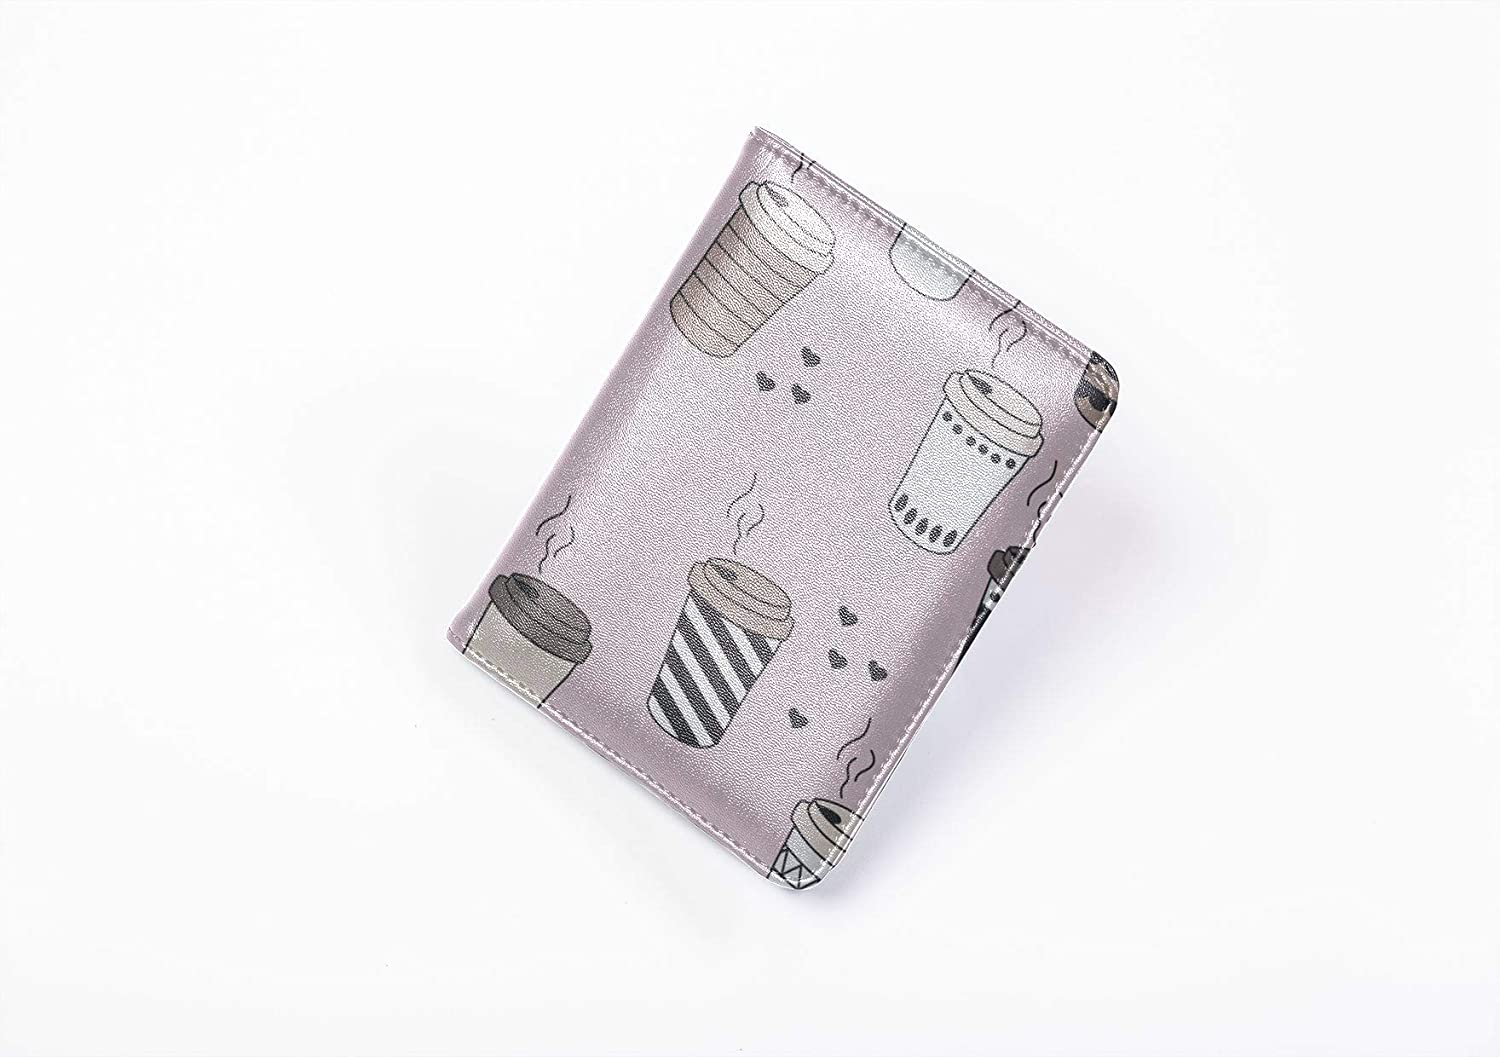 Usa Passport Cover Fashion Creative Water Glass Container Cases For Passport Multi Purpose Print Case Passport Holder Travel Wallets For Unisex 5.51x4.37 Inch